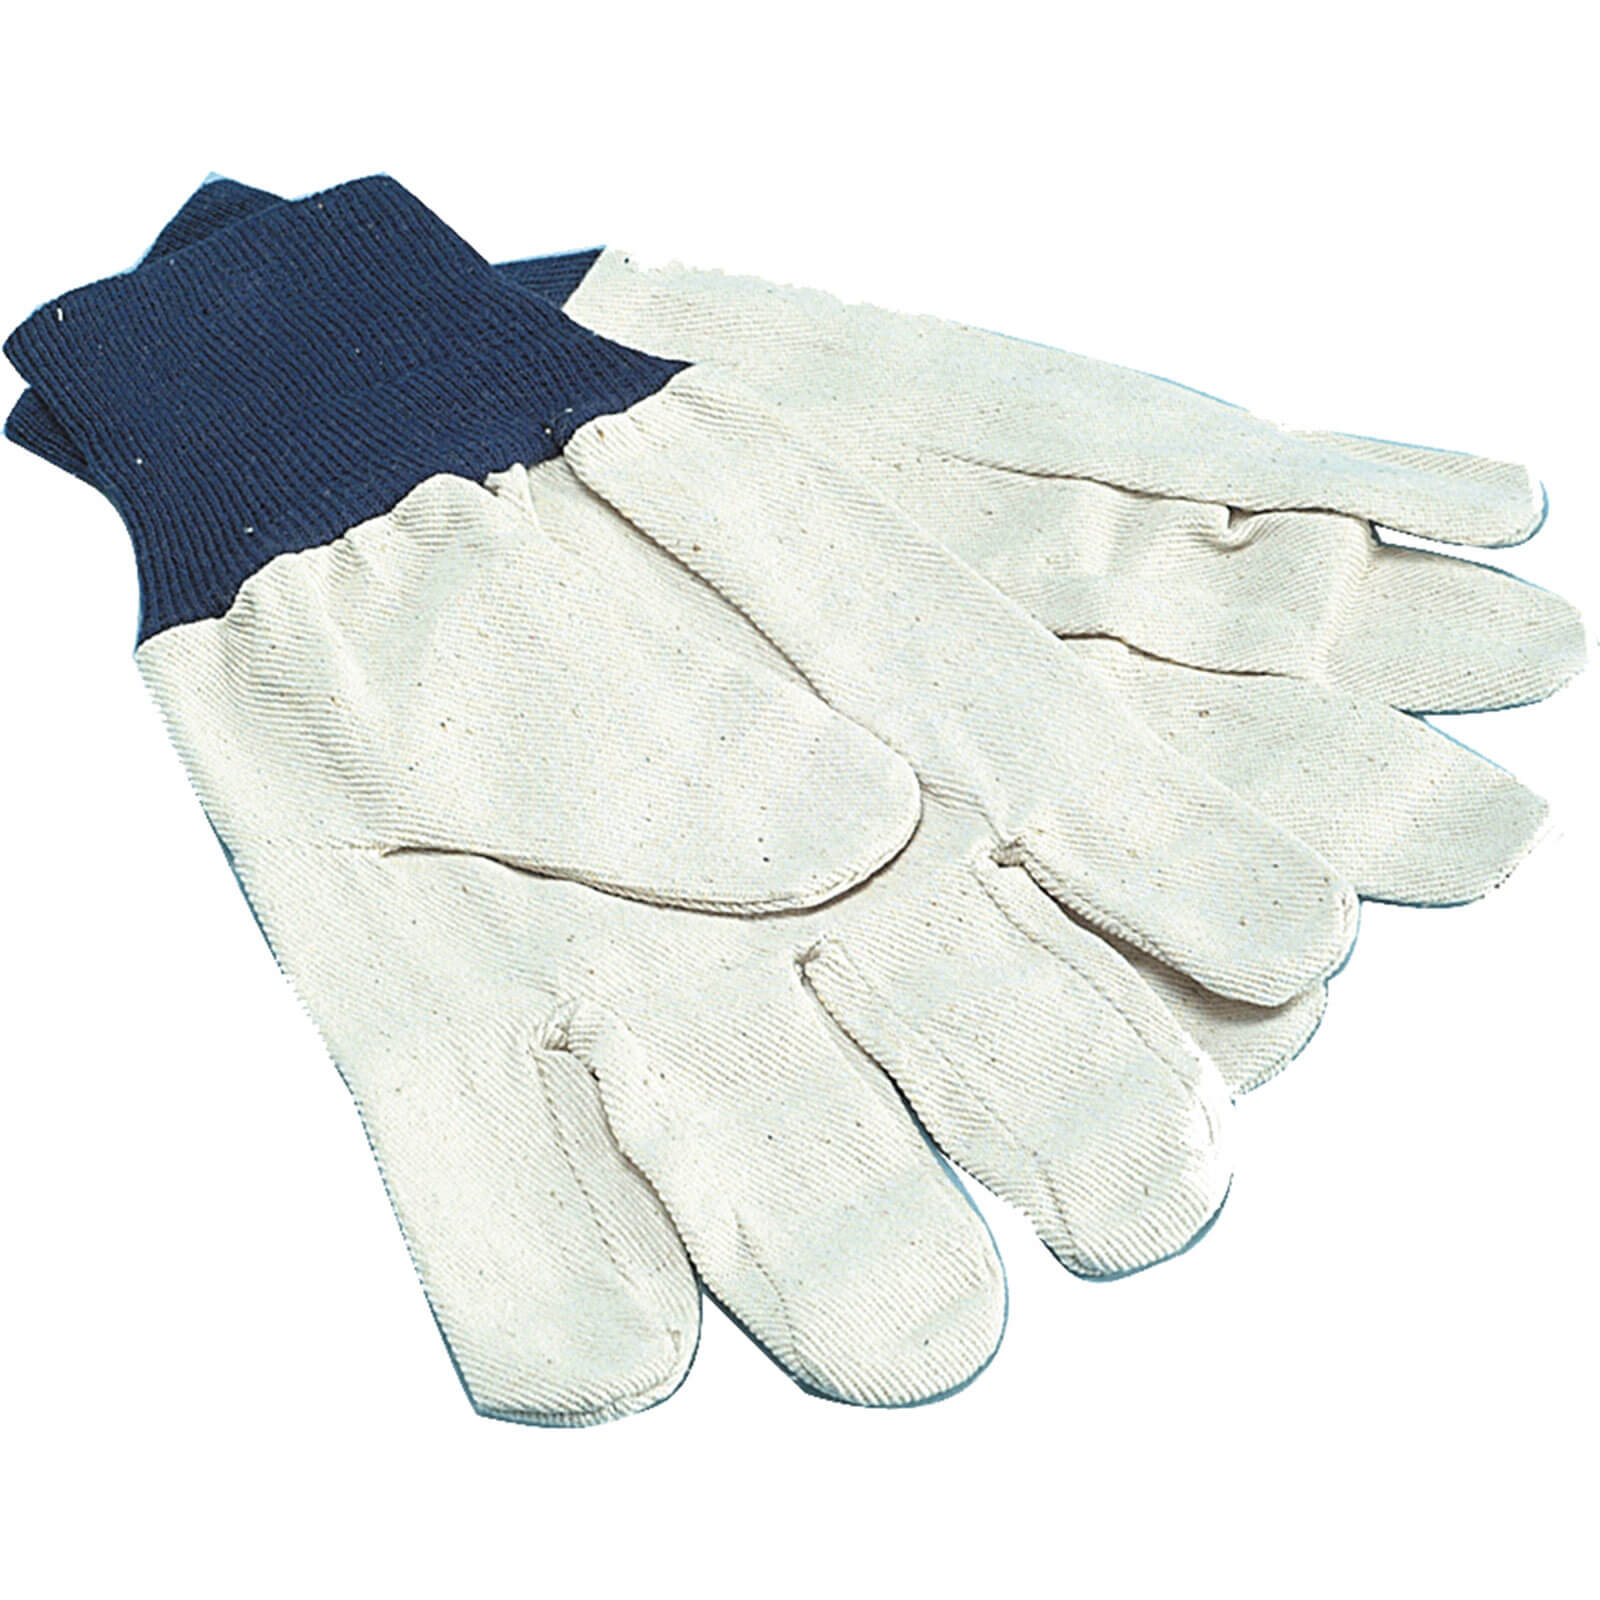 Tooled Up/Safety & Workwear/PPE/Town & Country Tgl401 Mens Canvas Gloves